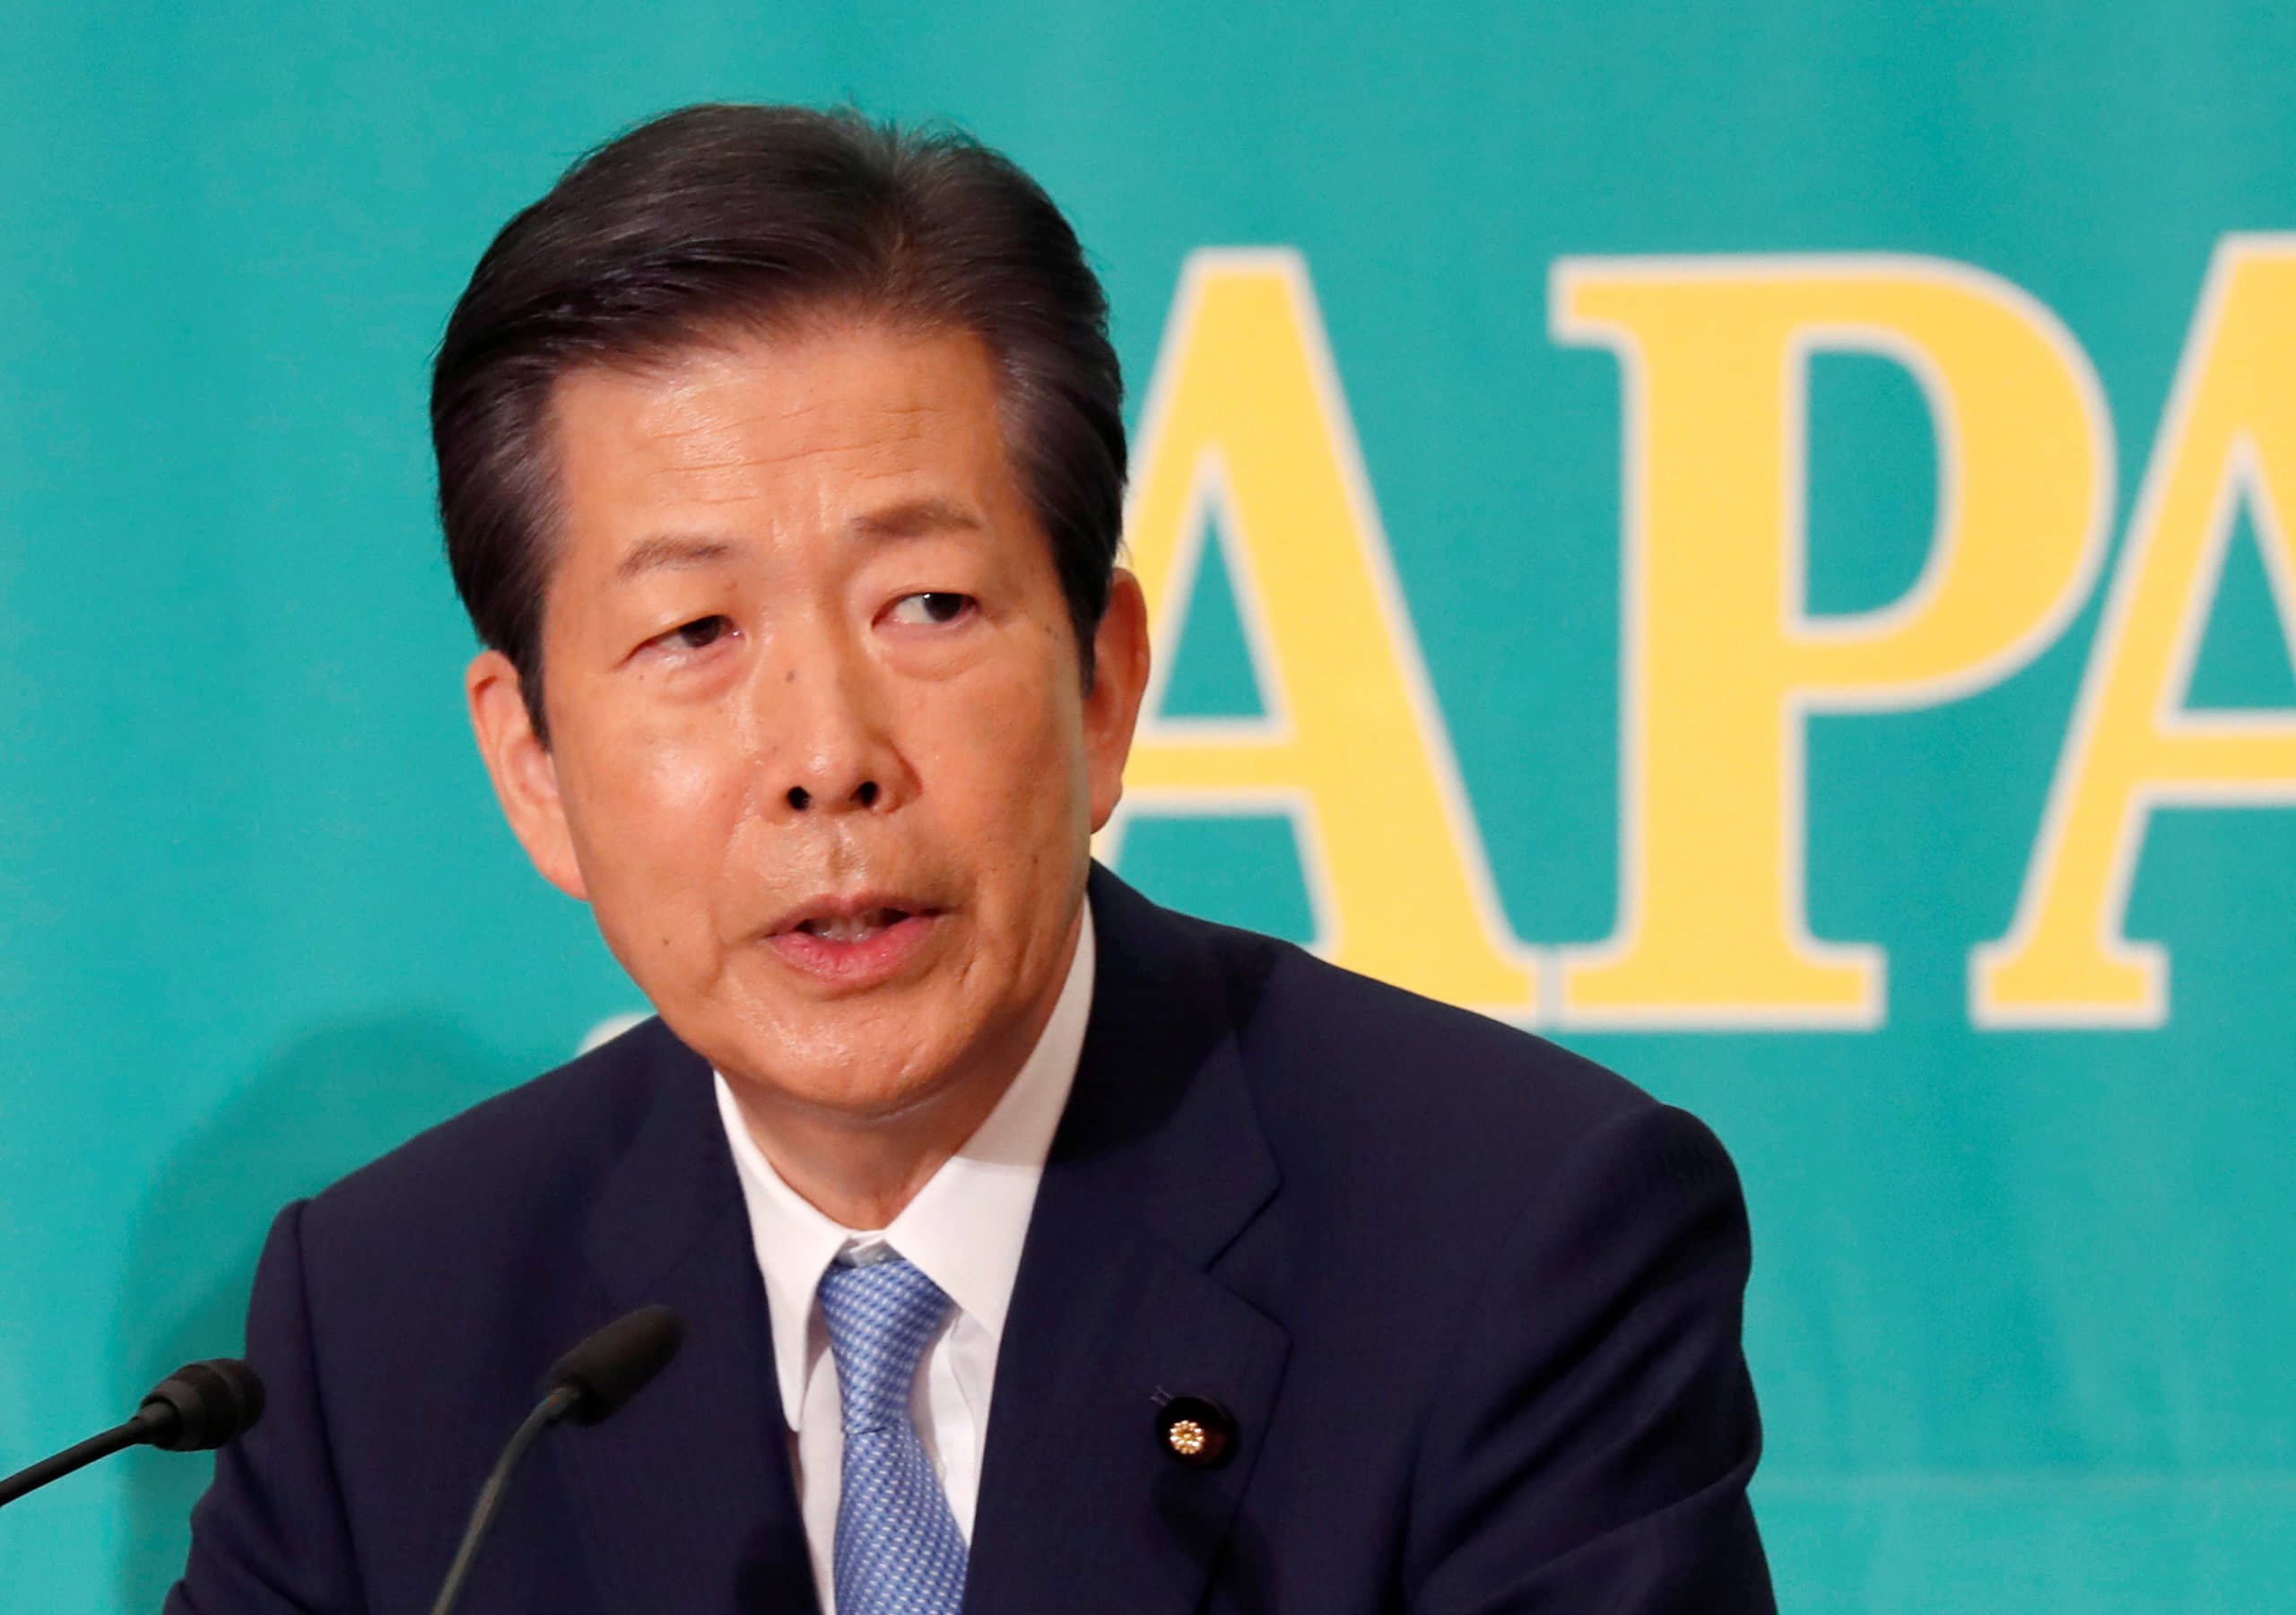 Natsuo Yamaguchi, head of the Liberal Democratic Party's coalition partner Komeito, has taken a cautious stance on the possibility of Japan  possessing the capability to attack enemy bases. | REUTERS